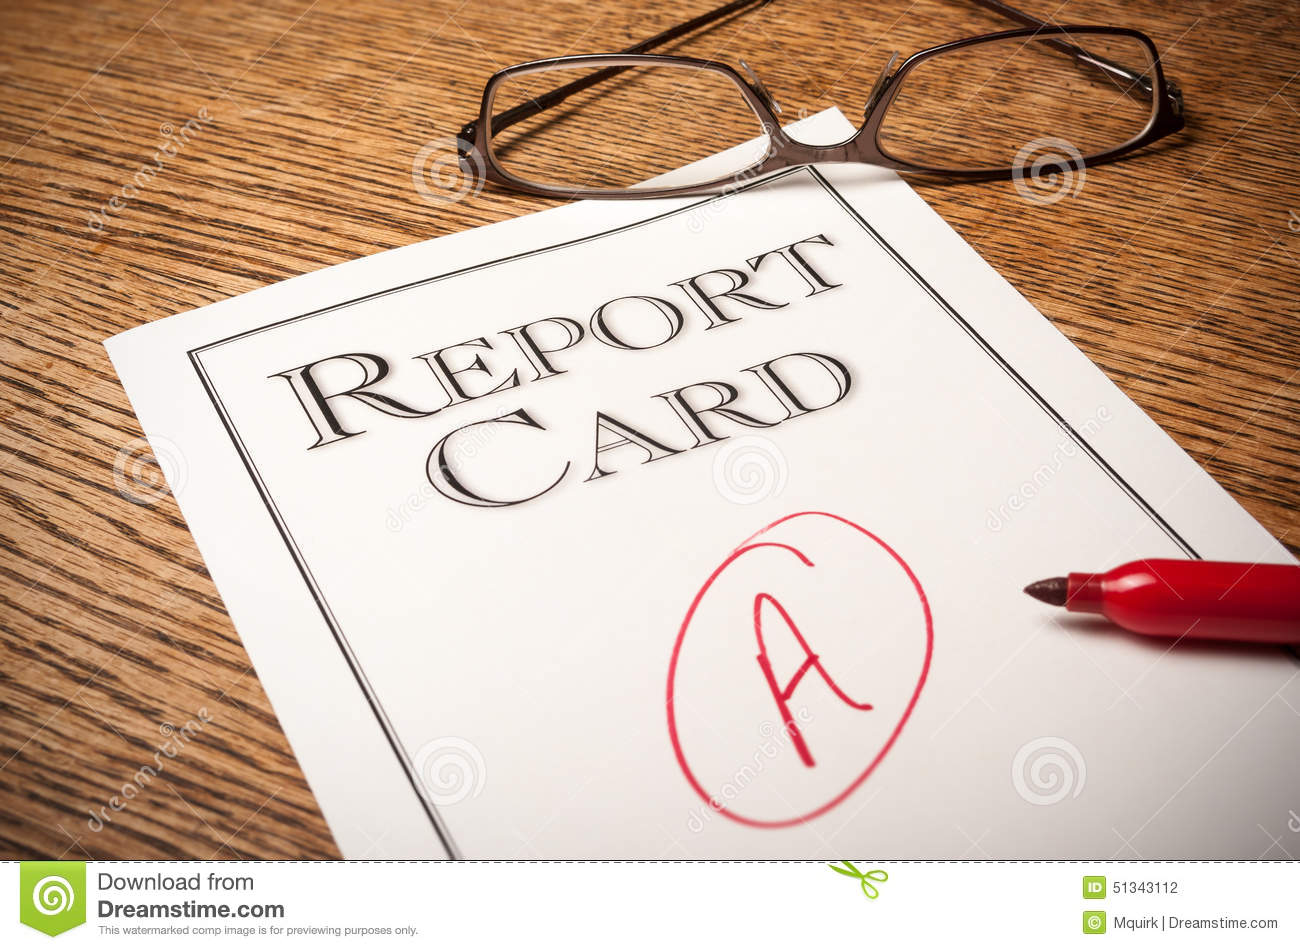 Report card on a desk stock photo. Image of fail, passing - 3